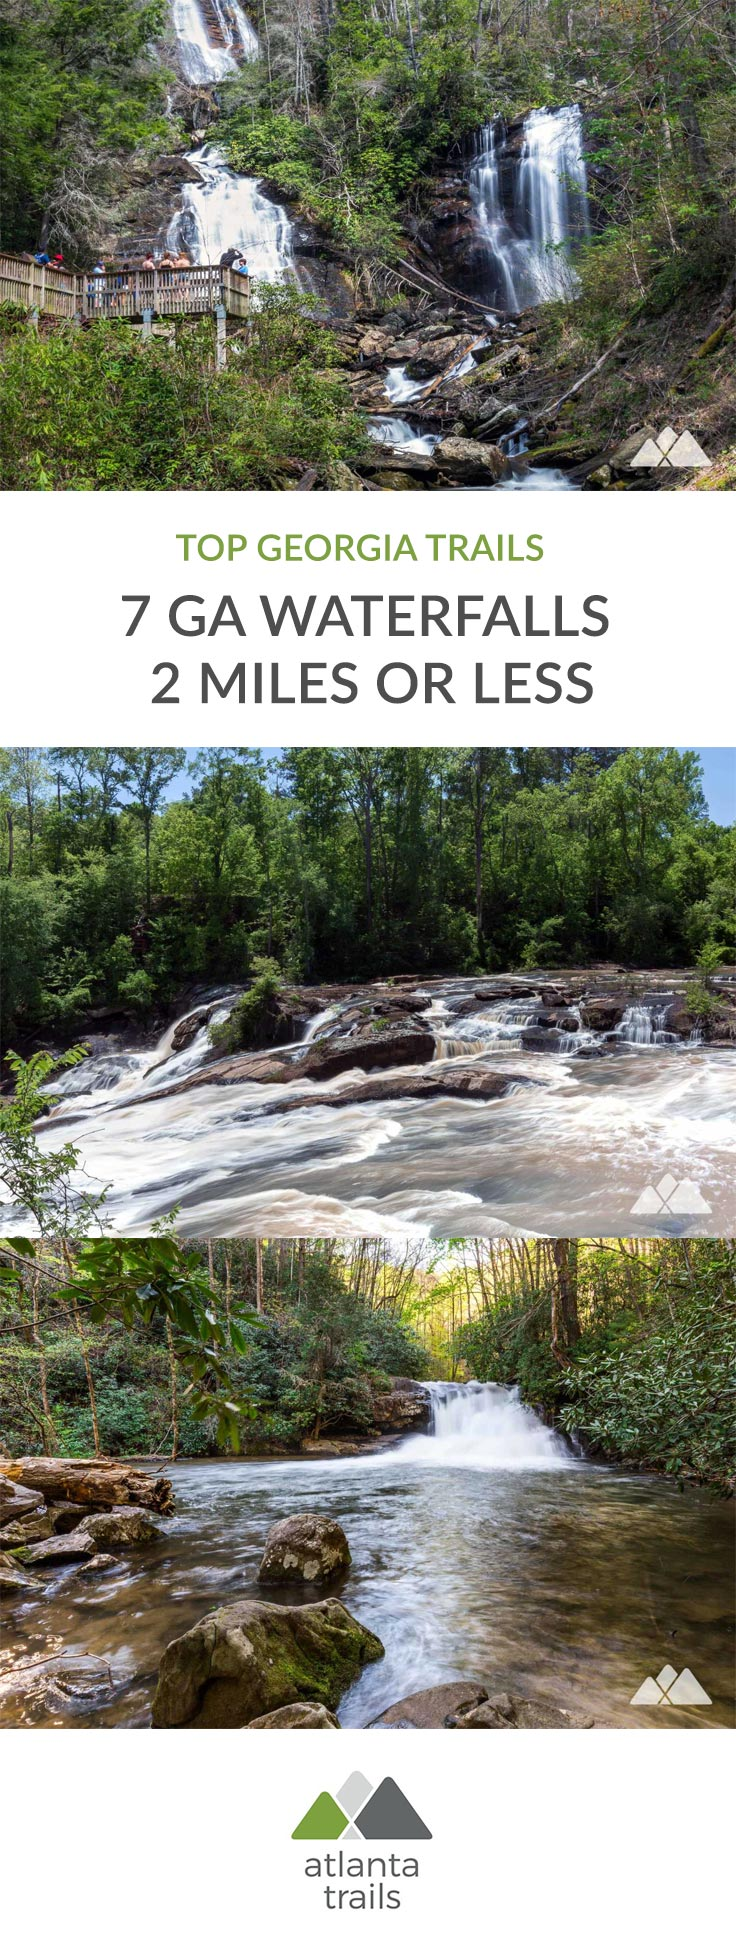 7 Short (but great!) Georgia Waterfall Hikes Under 2 Miles